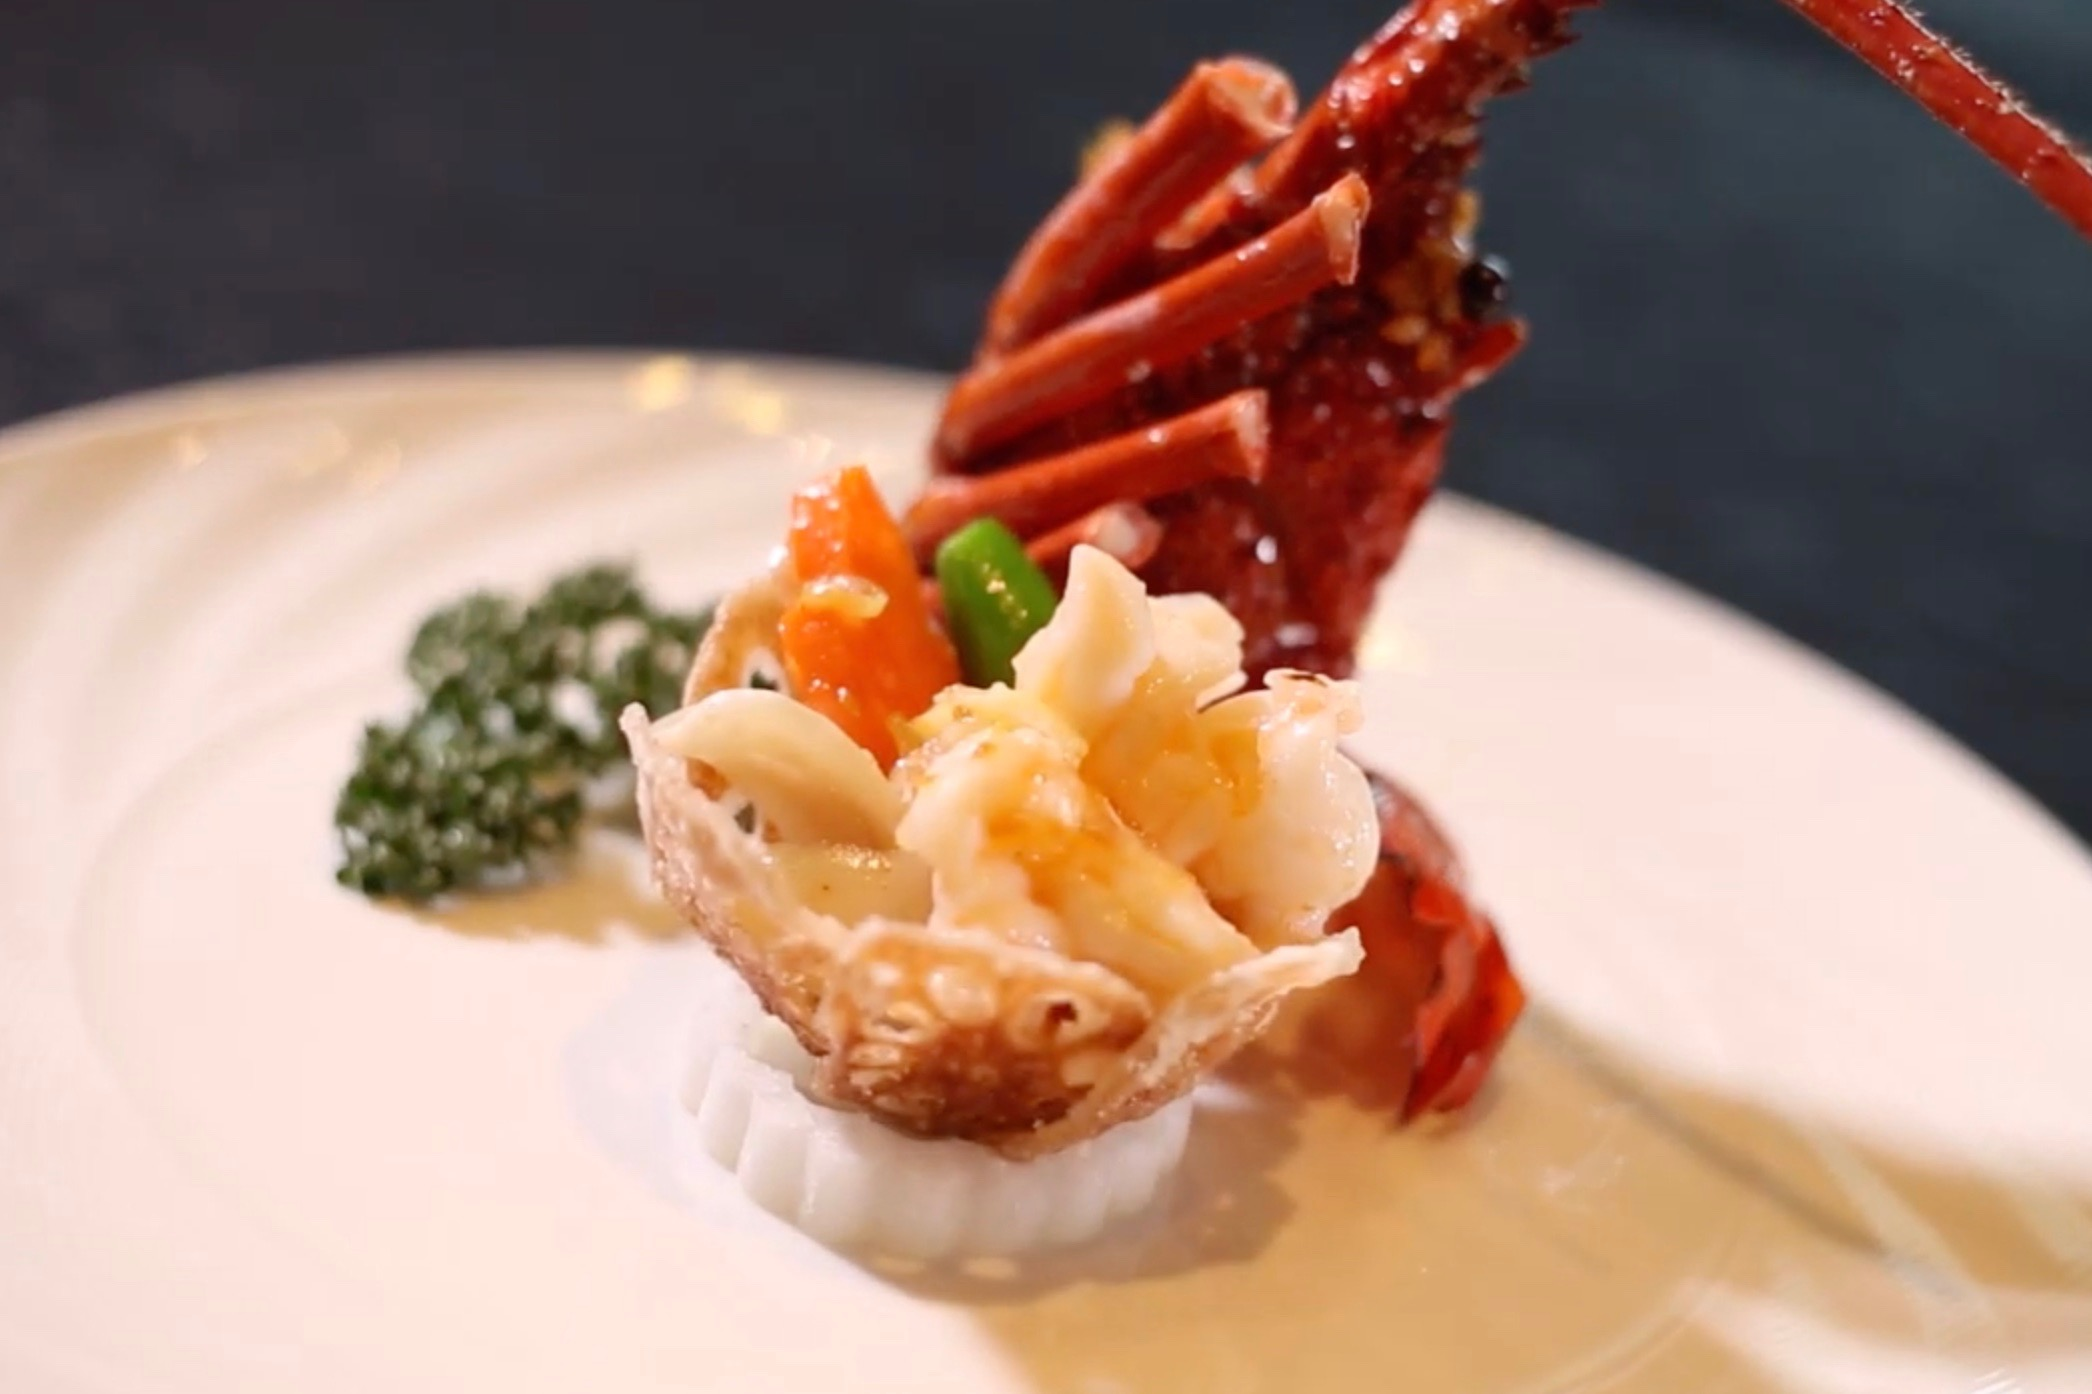 Stir Fried Shelled Ise Lobster│ Chinese Restaurant−−Imperial Palace